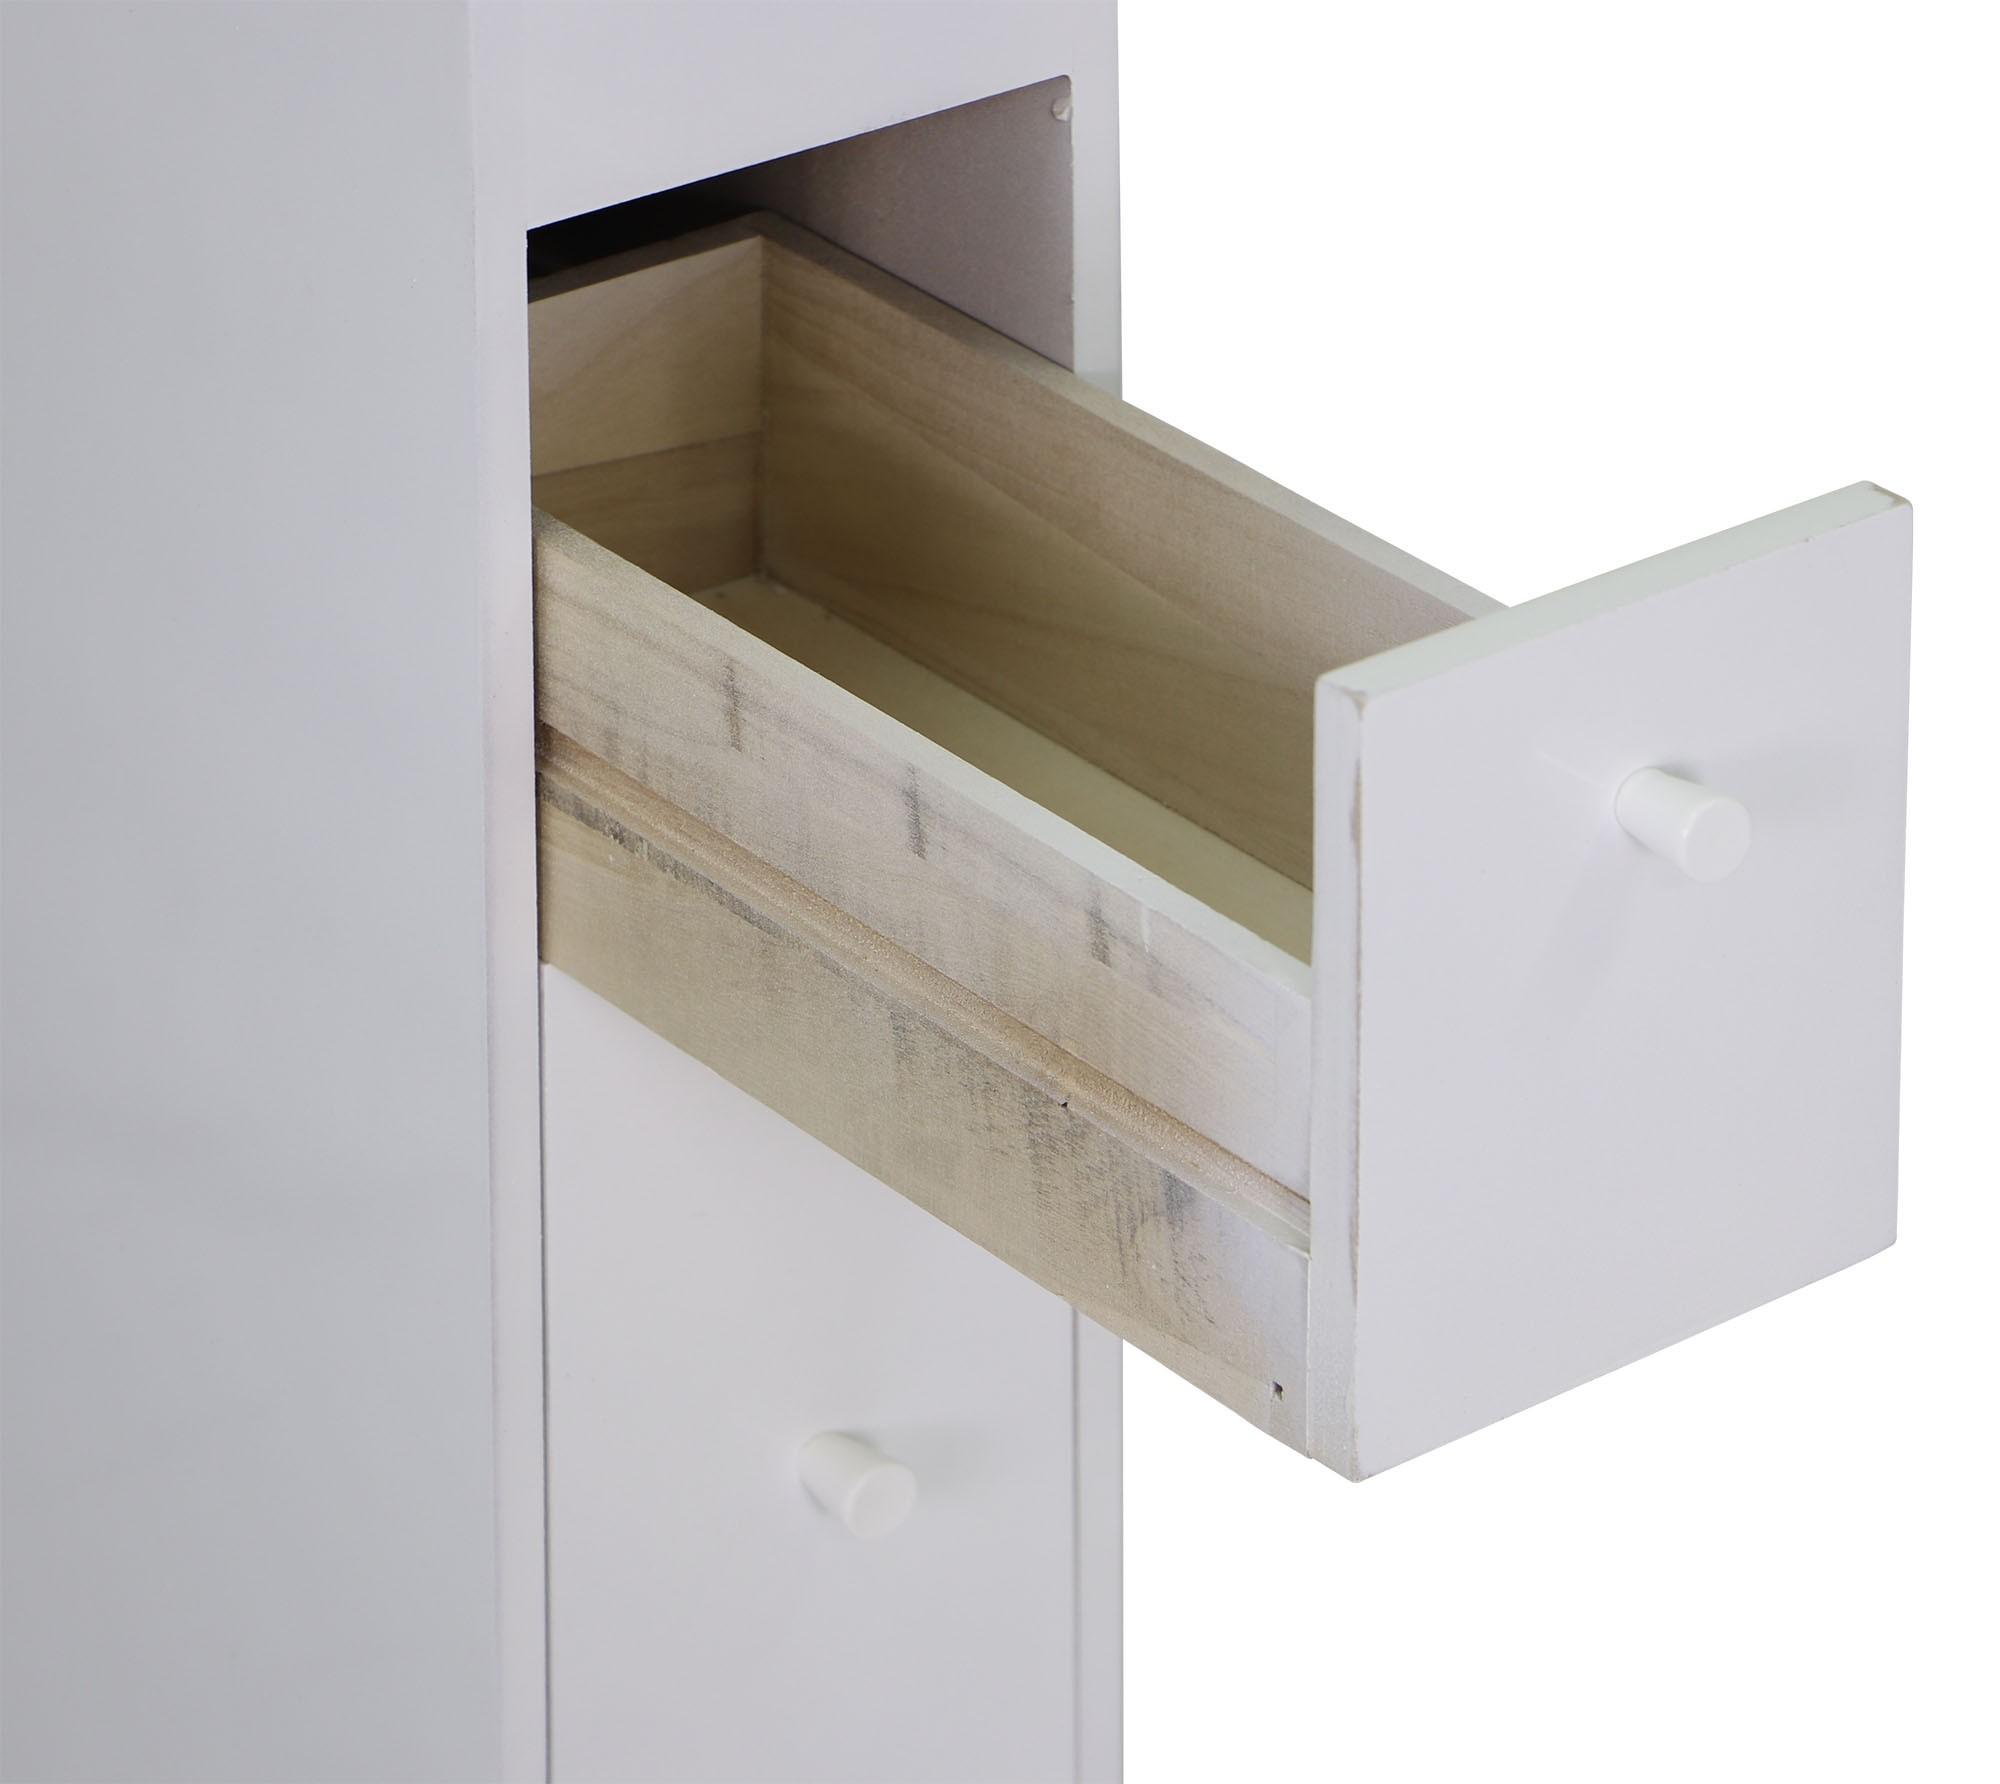 Slim Bathroom Storage Cabinet. 2 Customer Reviews